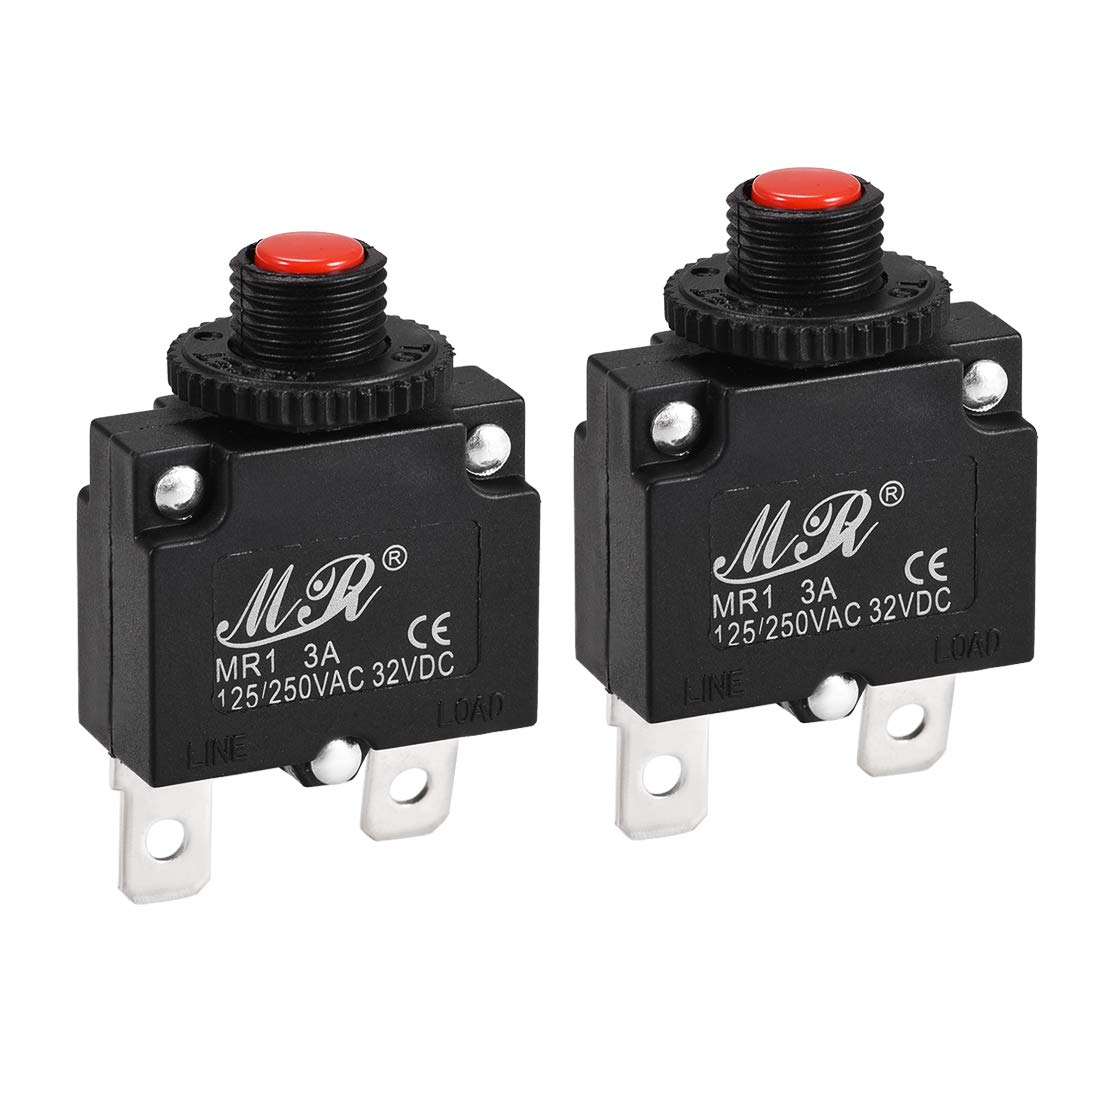 uxcell Thermal Circuit Breakers 7A 125//250V AC 32V DC Push Button Manual Reset Overload Protector Switch 2 Pcs